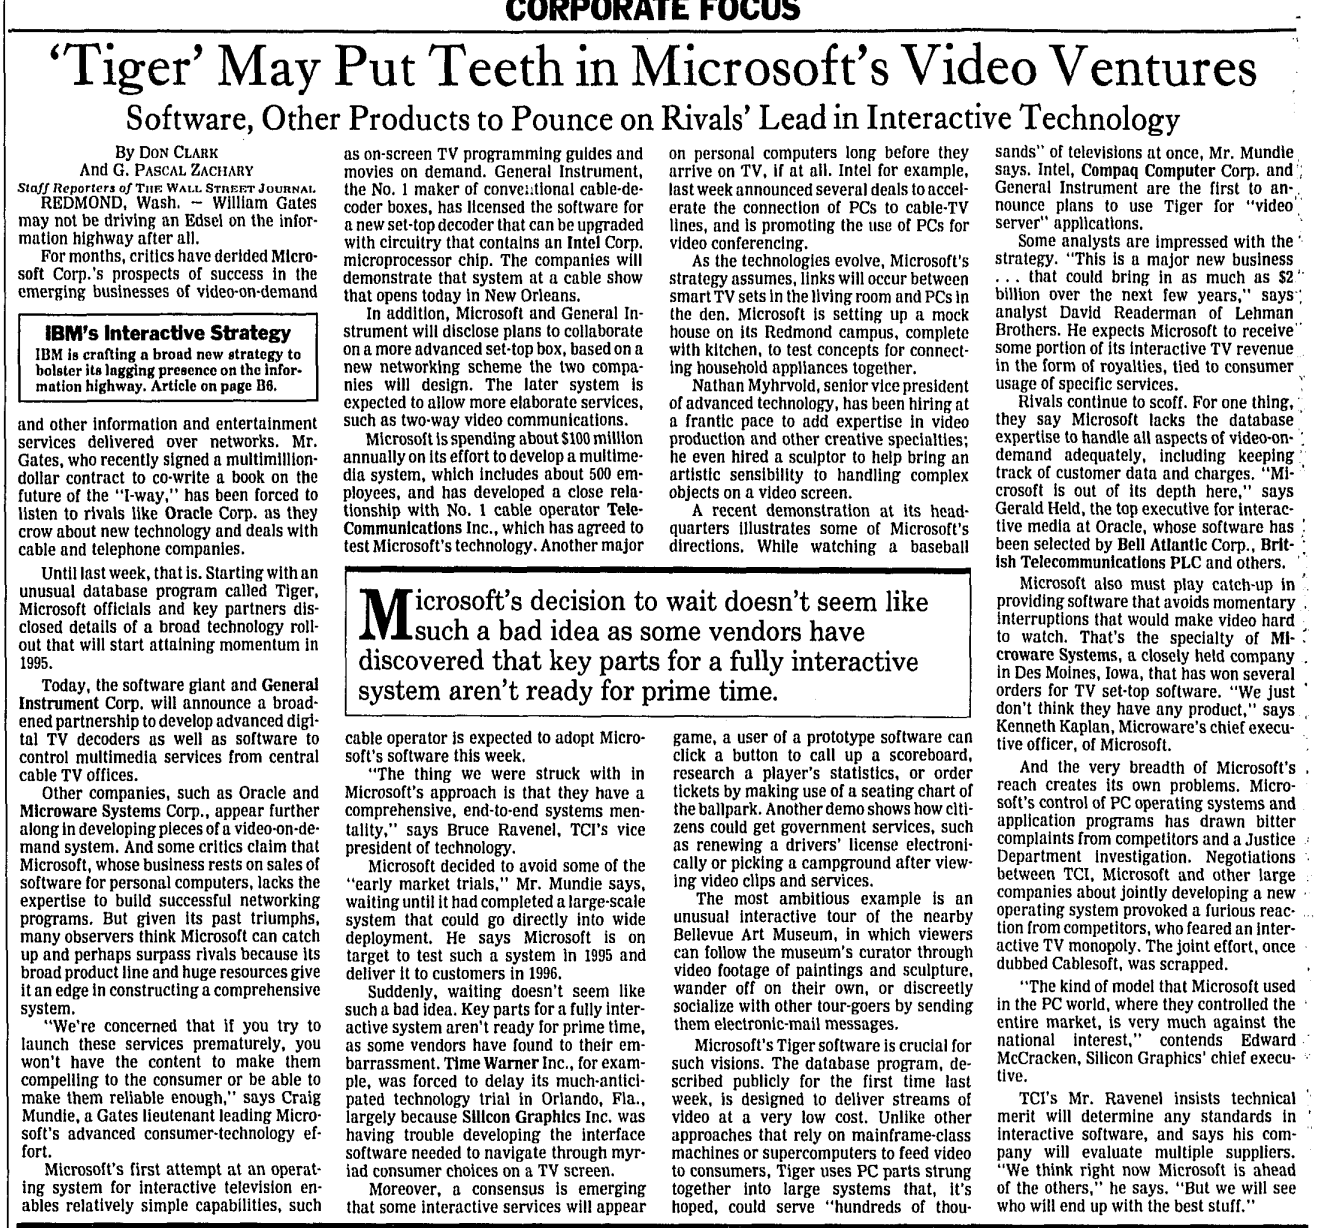 WSJ article: 'Tiger' May Put Teeth in Microsoft's Video Ventures: Software, other products to pounce on Rival's Lead in Interactive Technology